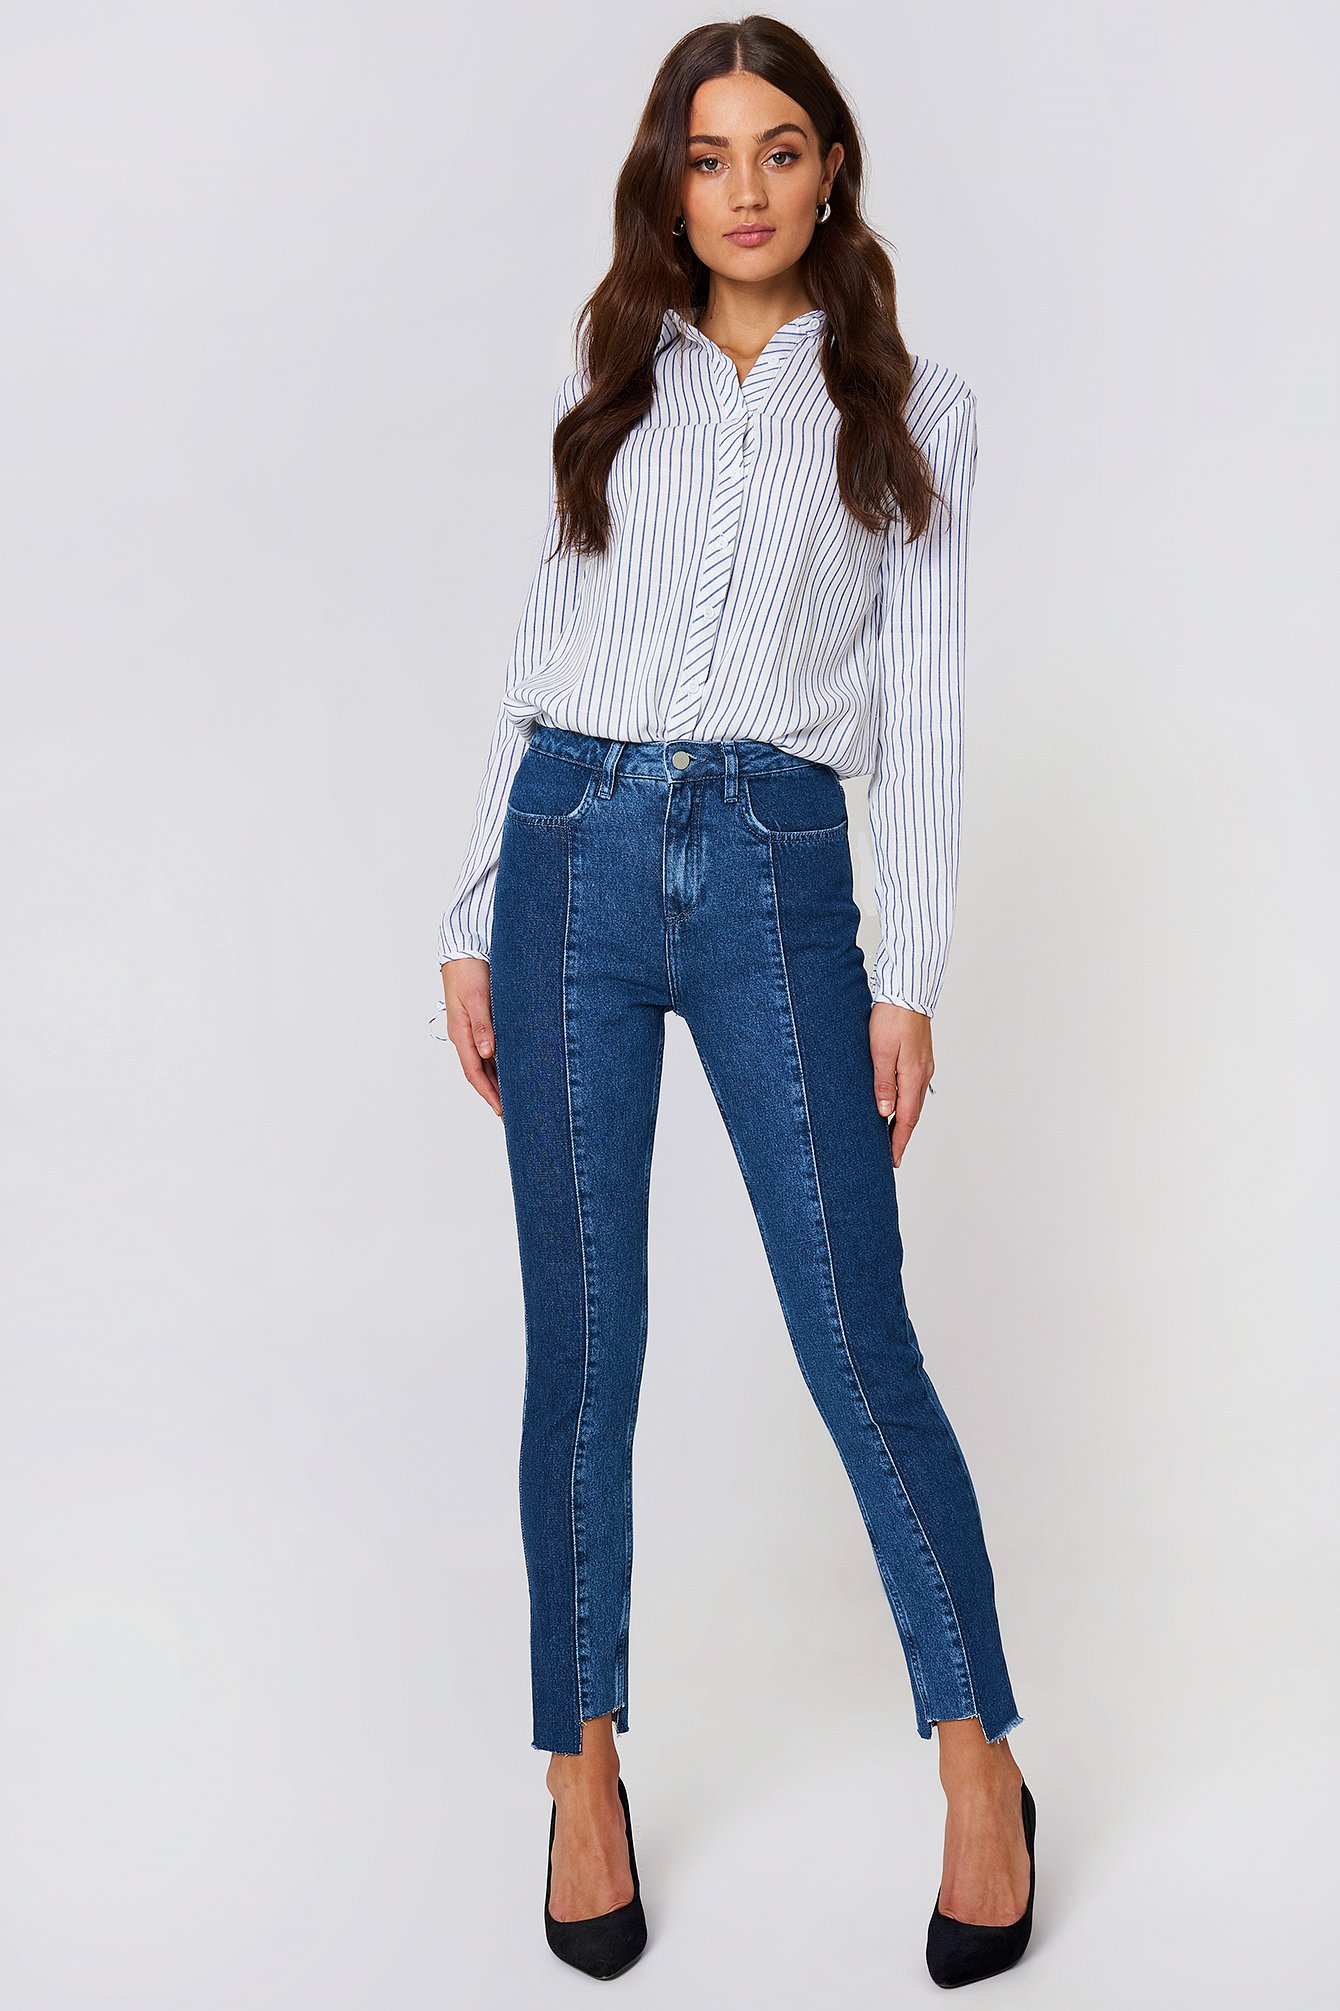 Panel Jeans